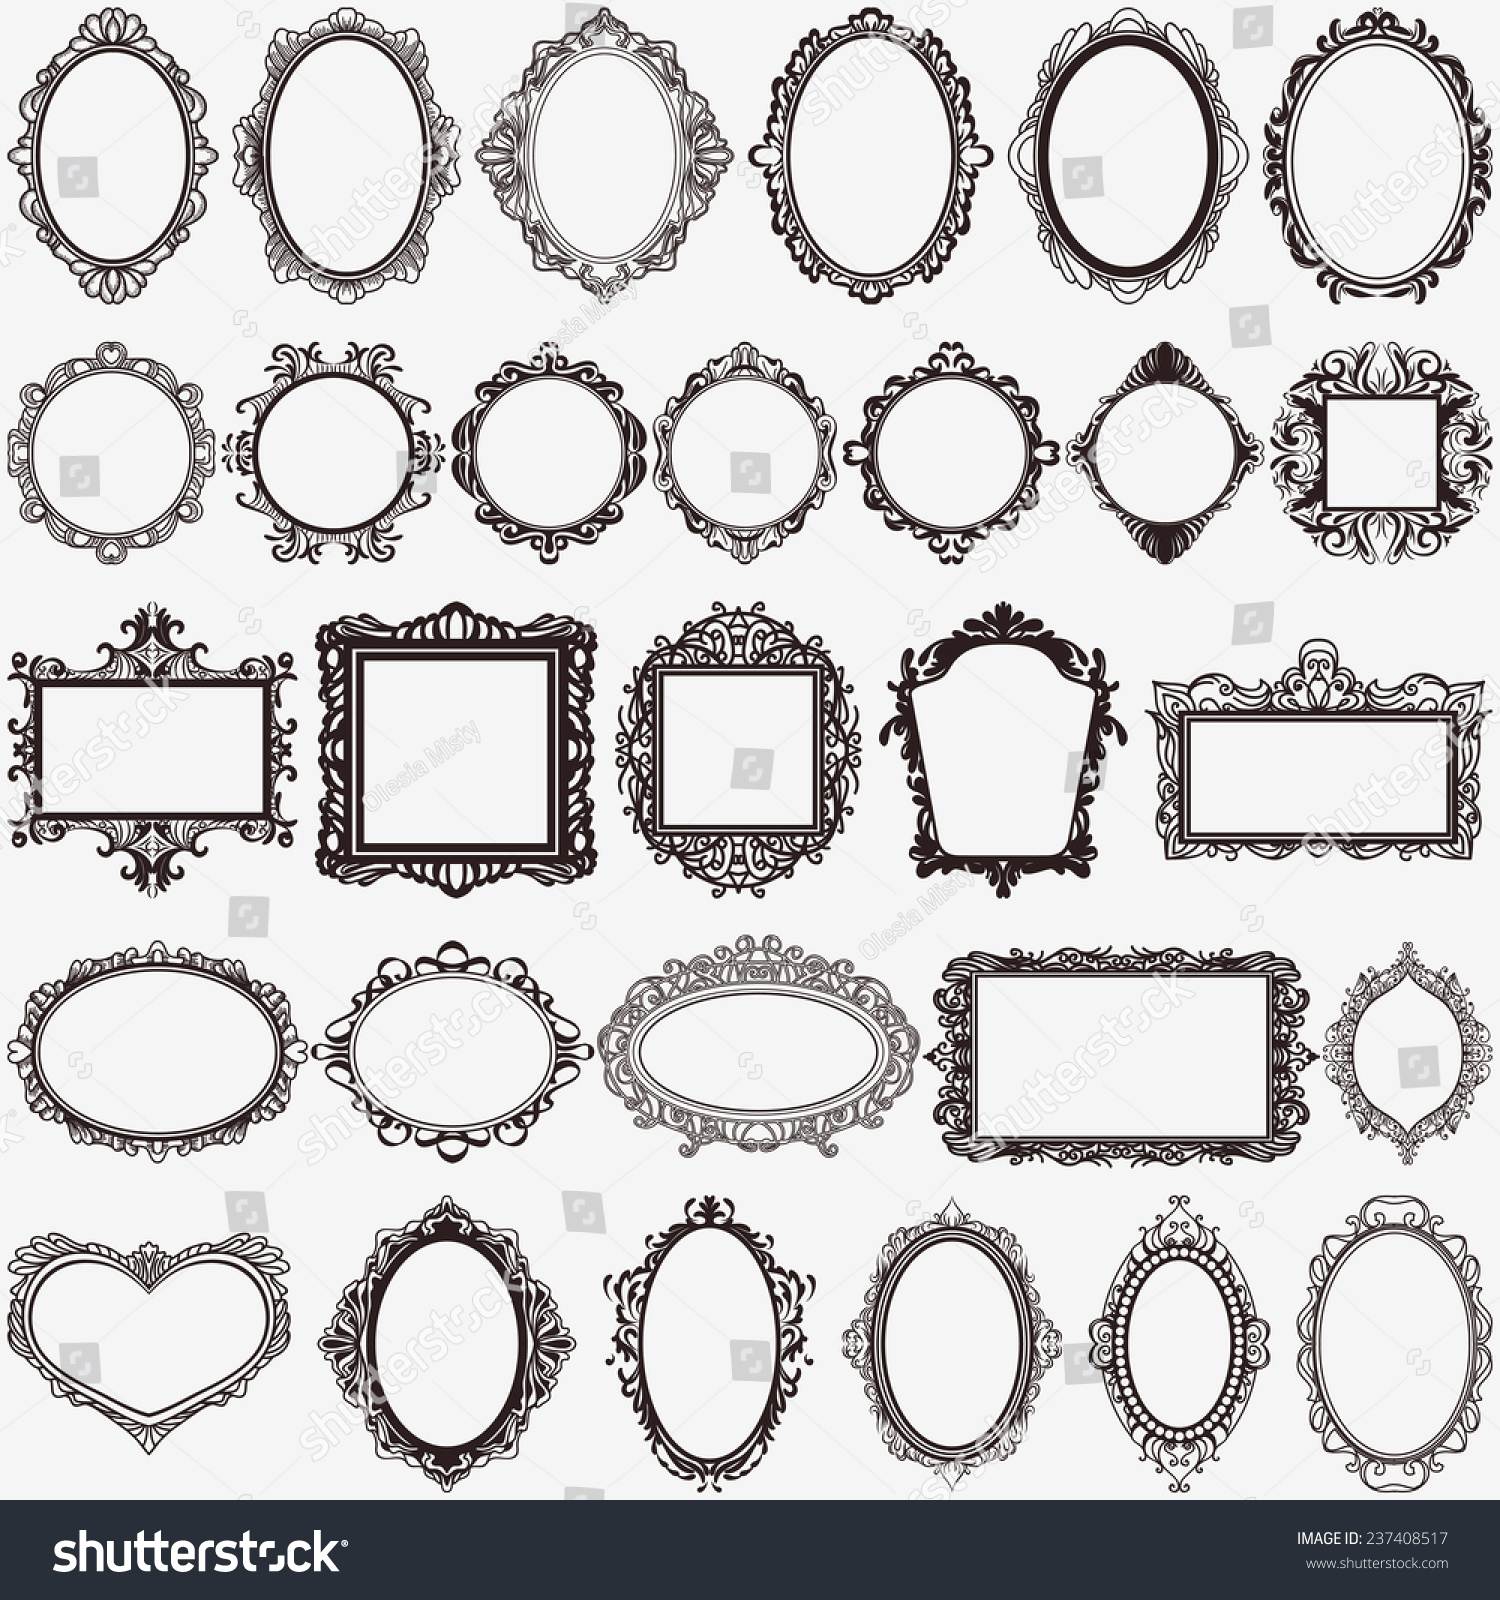 set of black round and square vintage frames design elements